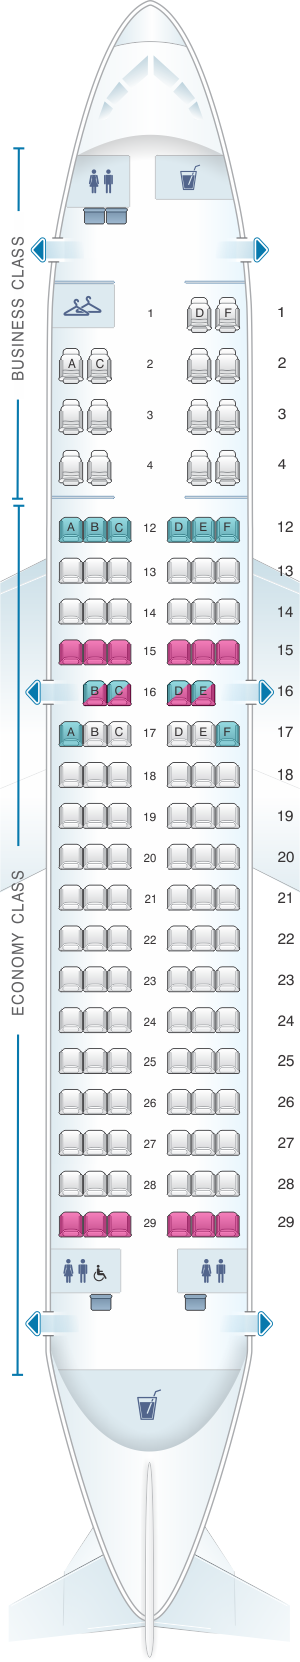 Seat map for Air Canada Airbus A319 100